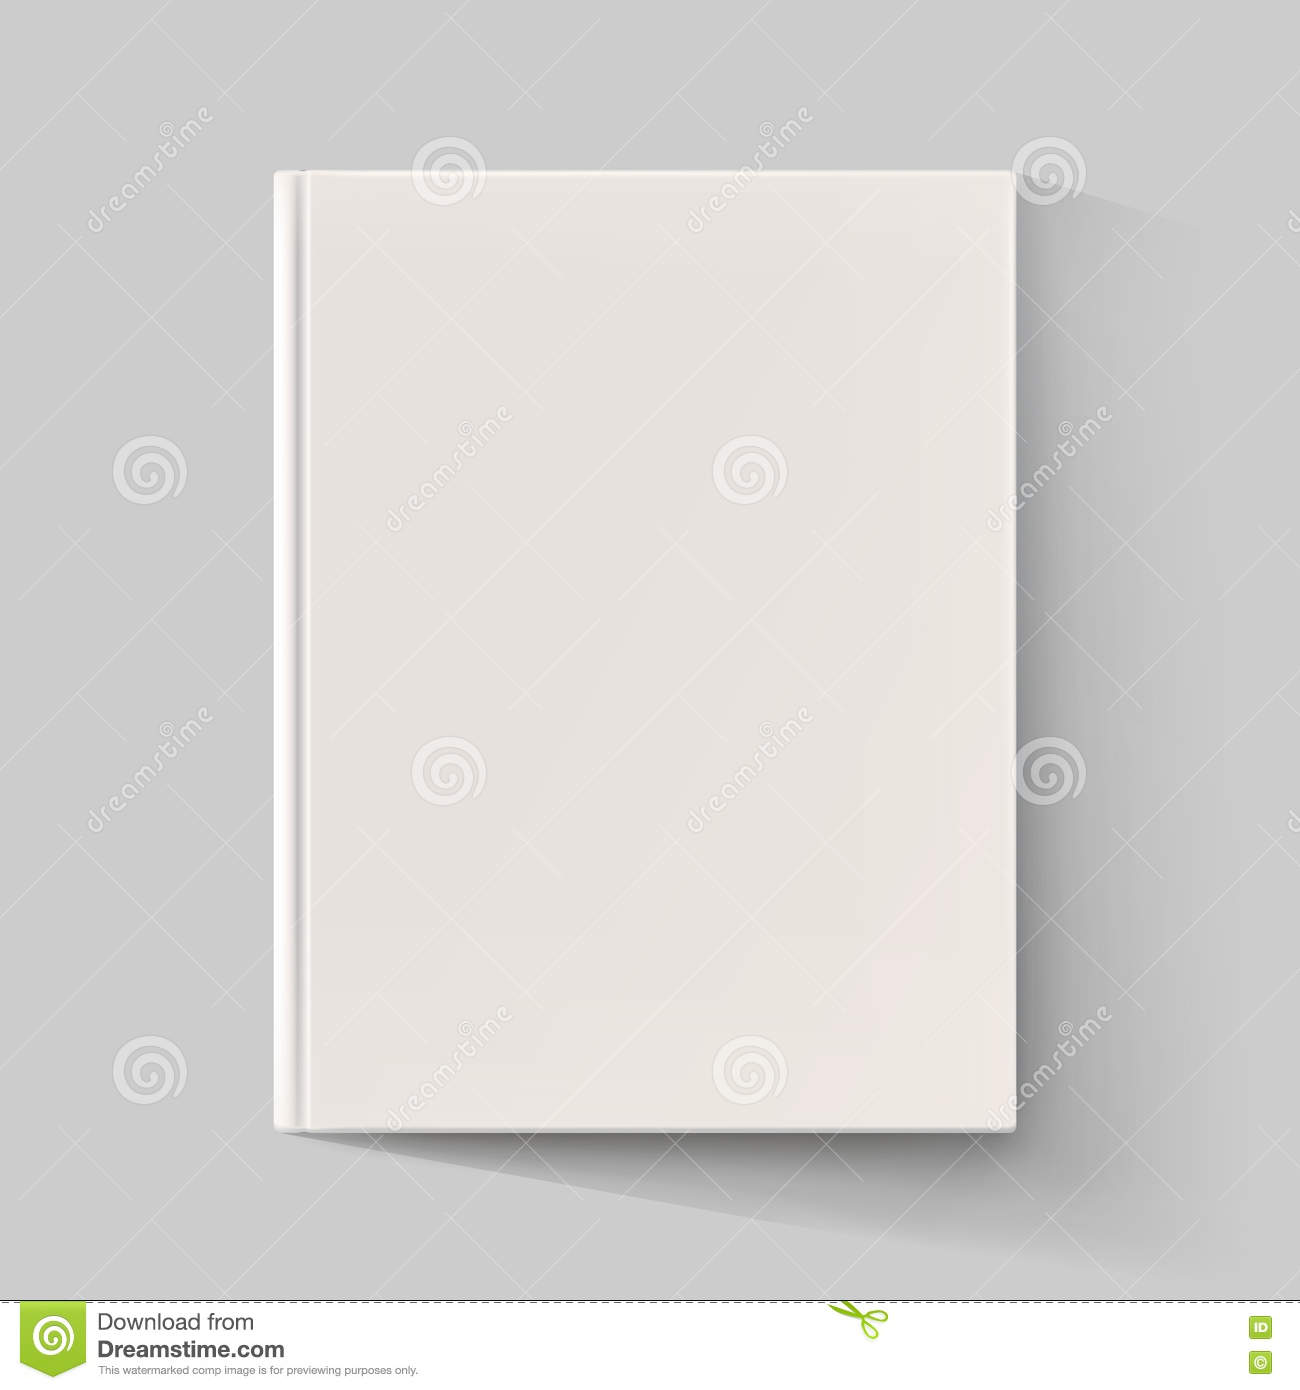 Blank Book Cover Vector Illustration Free ~ Blank book cover with long shadow vector illustration